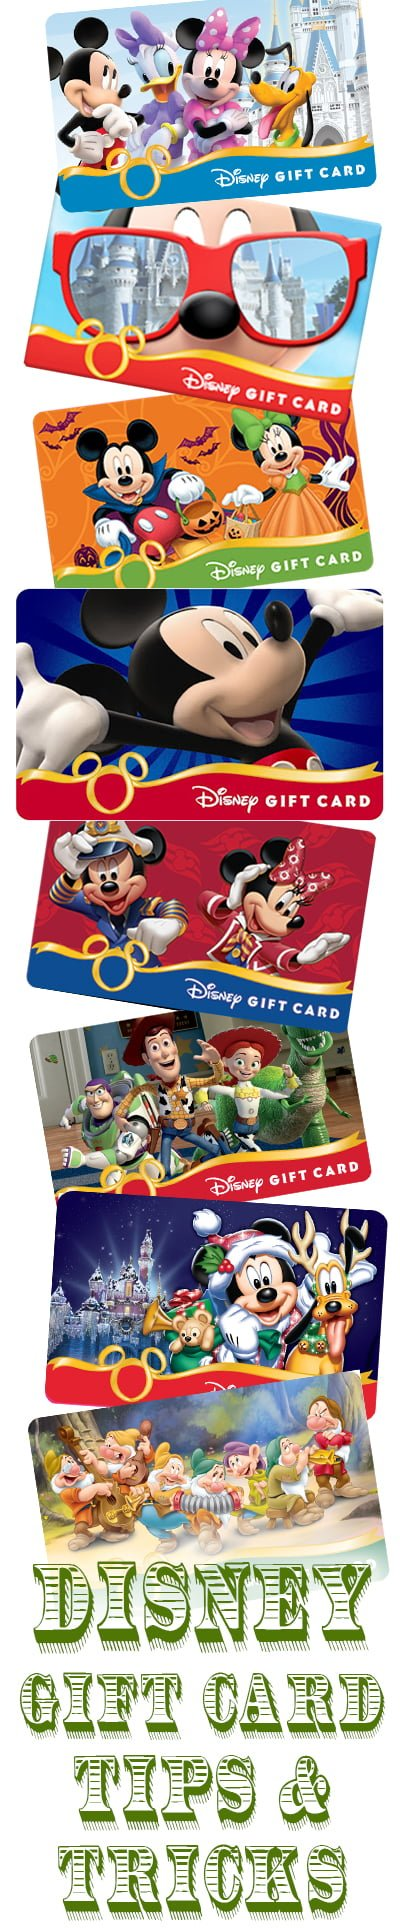 Tips for Saving Money on Disney Gift Cards - Disney Tourist Blog